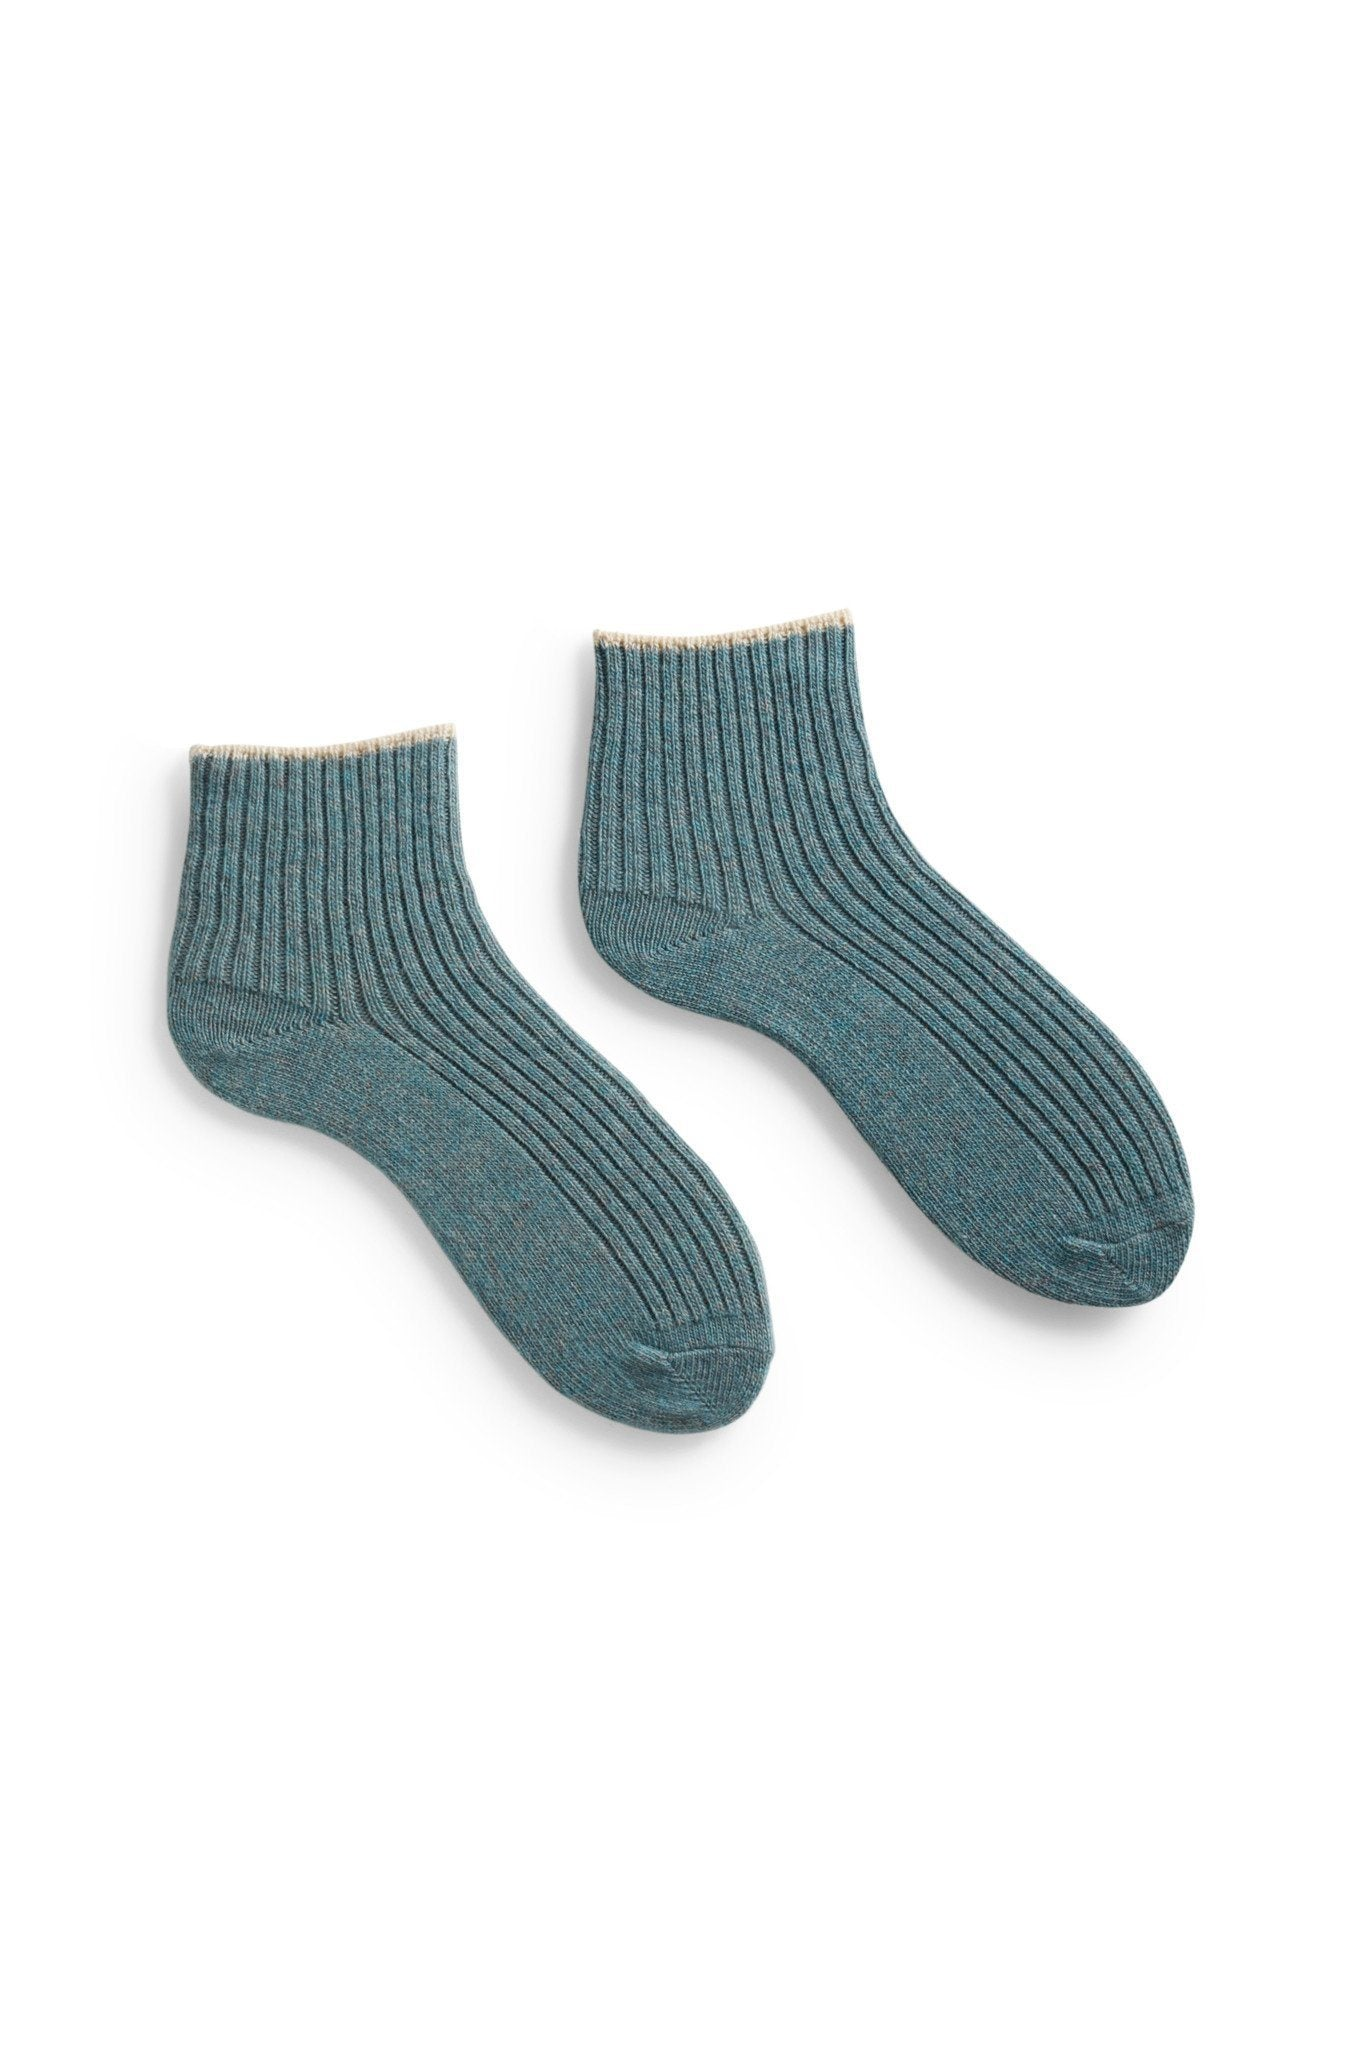 ribbed tipped socks - assorted colors